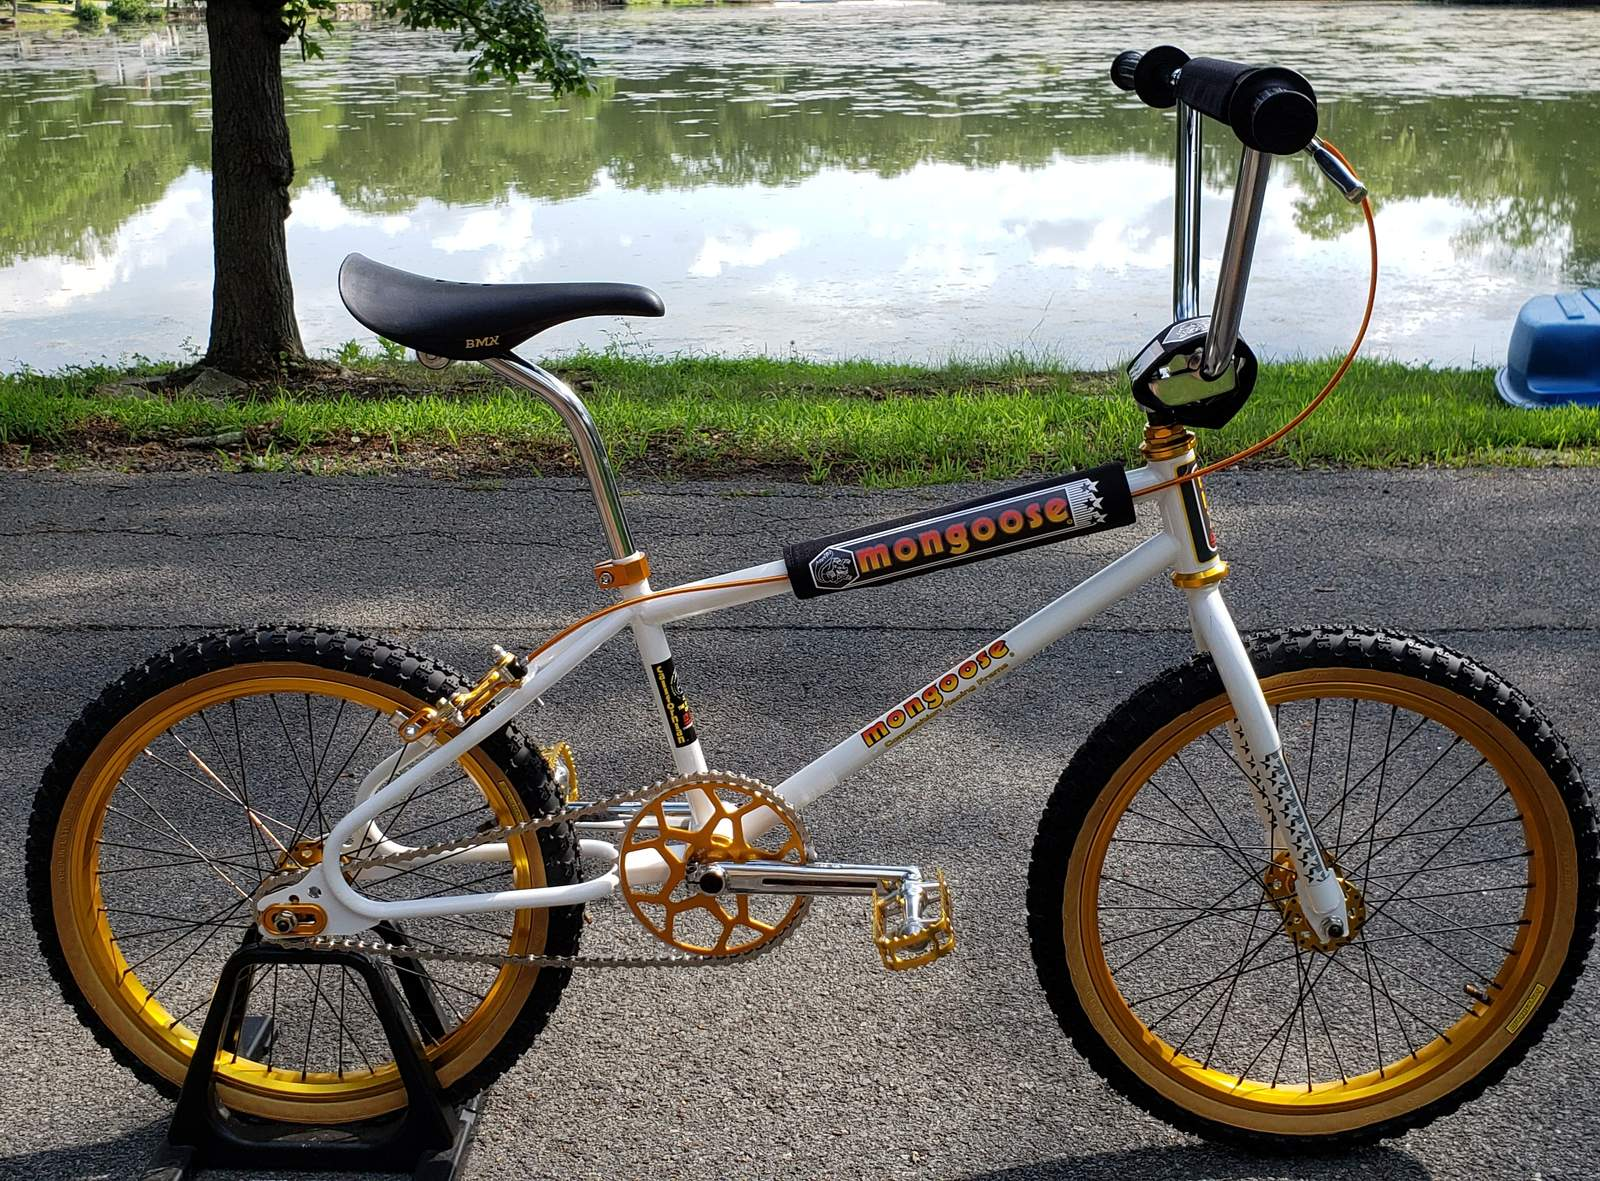 https://s3.amazonaws.com/uploads.bmxmuseum.com/user-images/89660/20190804_1629585d7d9d2d3e.jpg